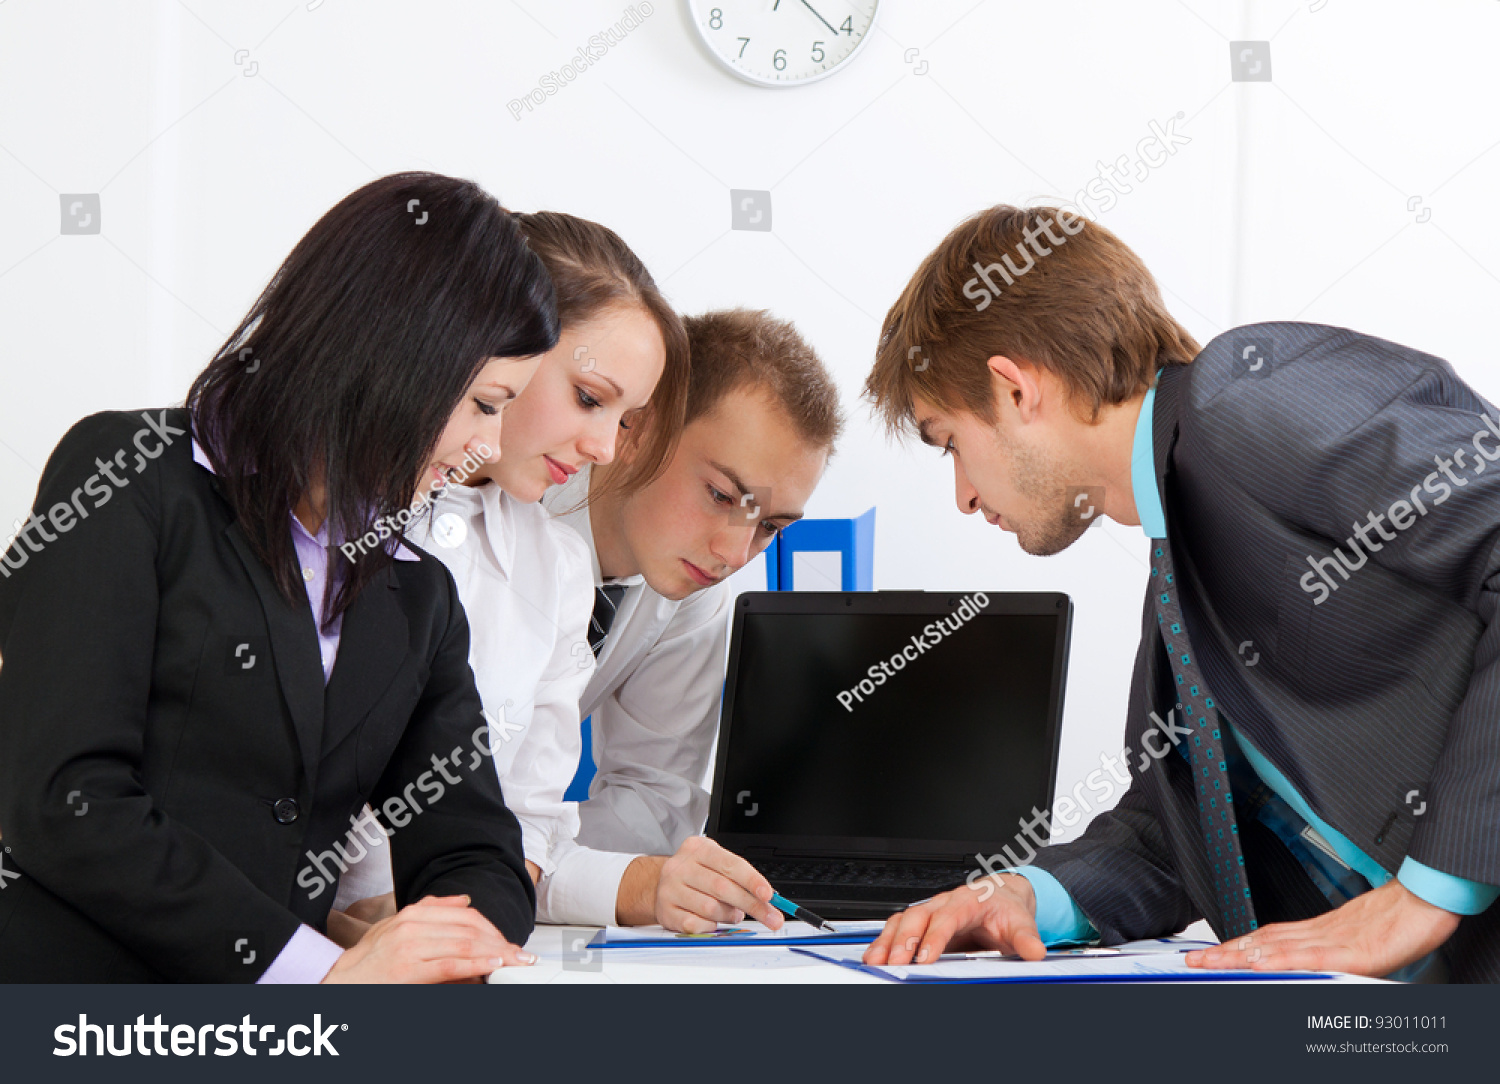 men and women in business society essay Men and women have different roles to play in modern society men and women have different roles to play in modern society  women's roles in society essay sample.